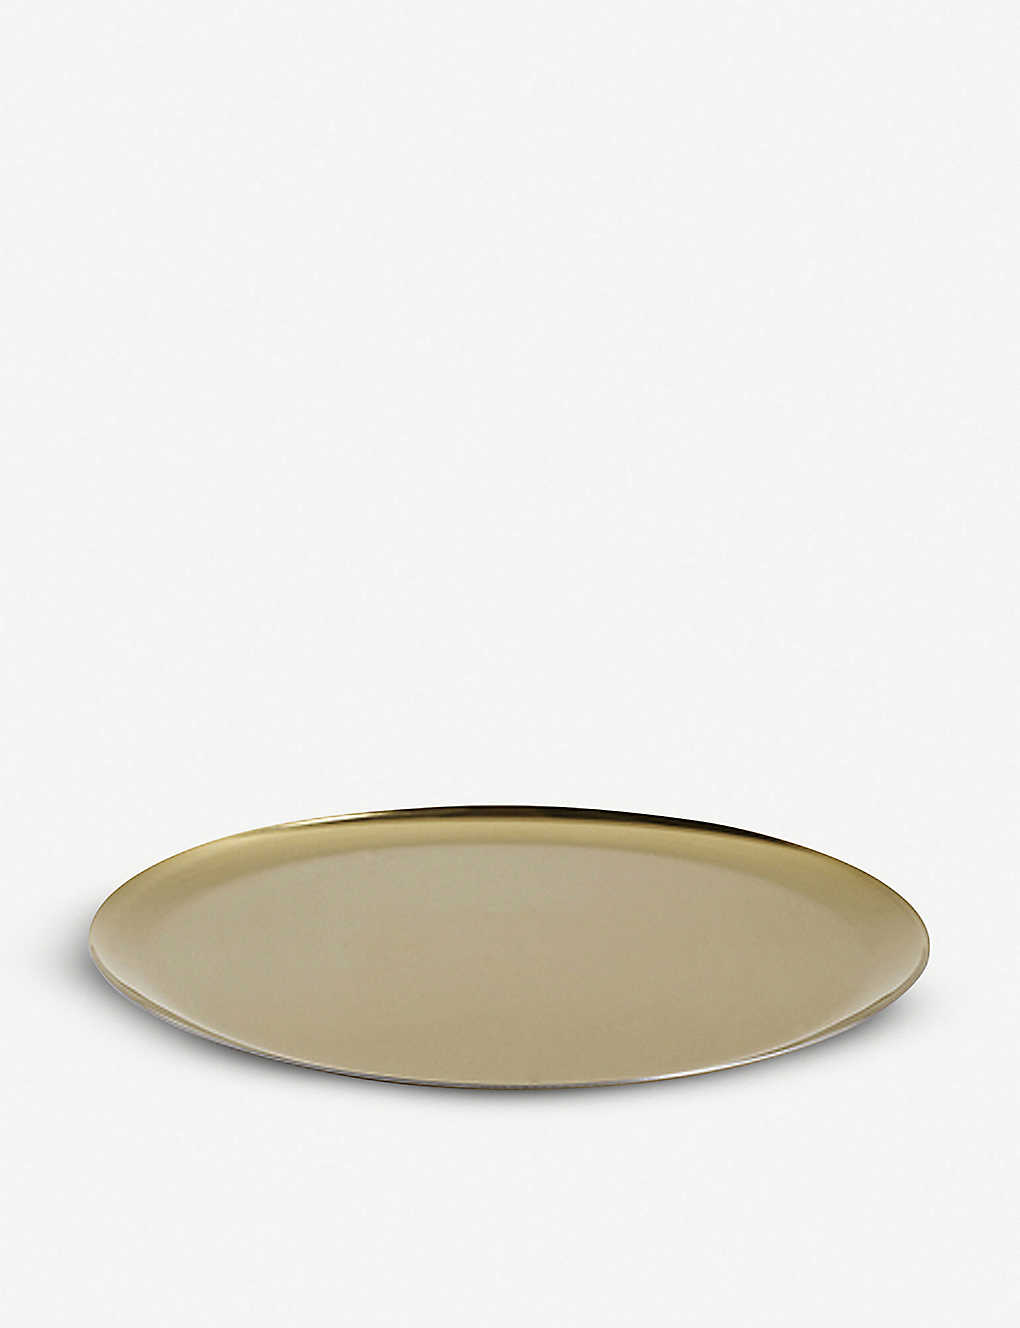 HAY: Gold-toned steel serving tray 28cm